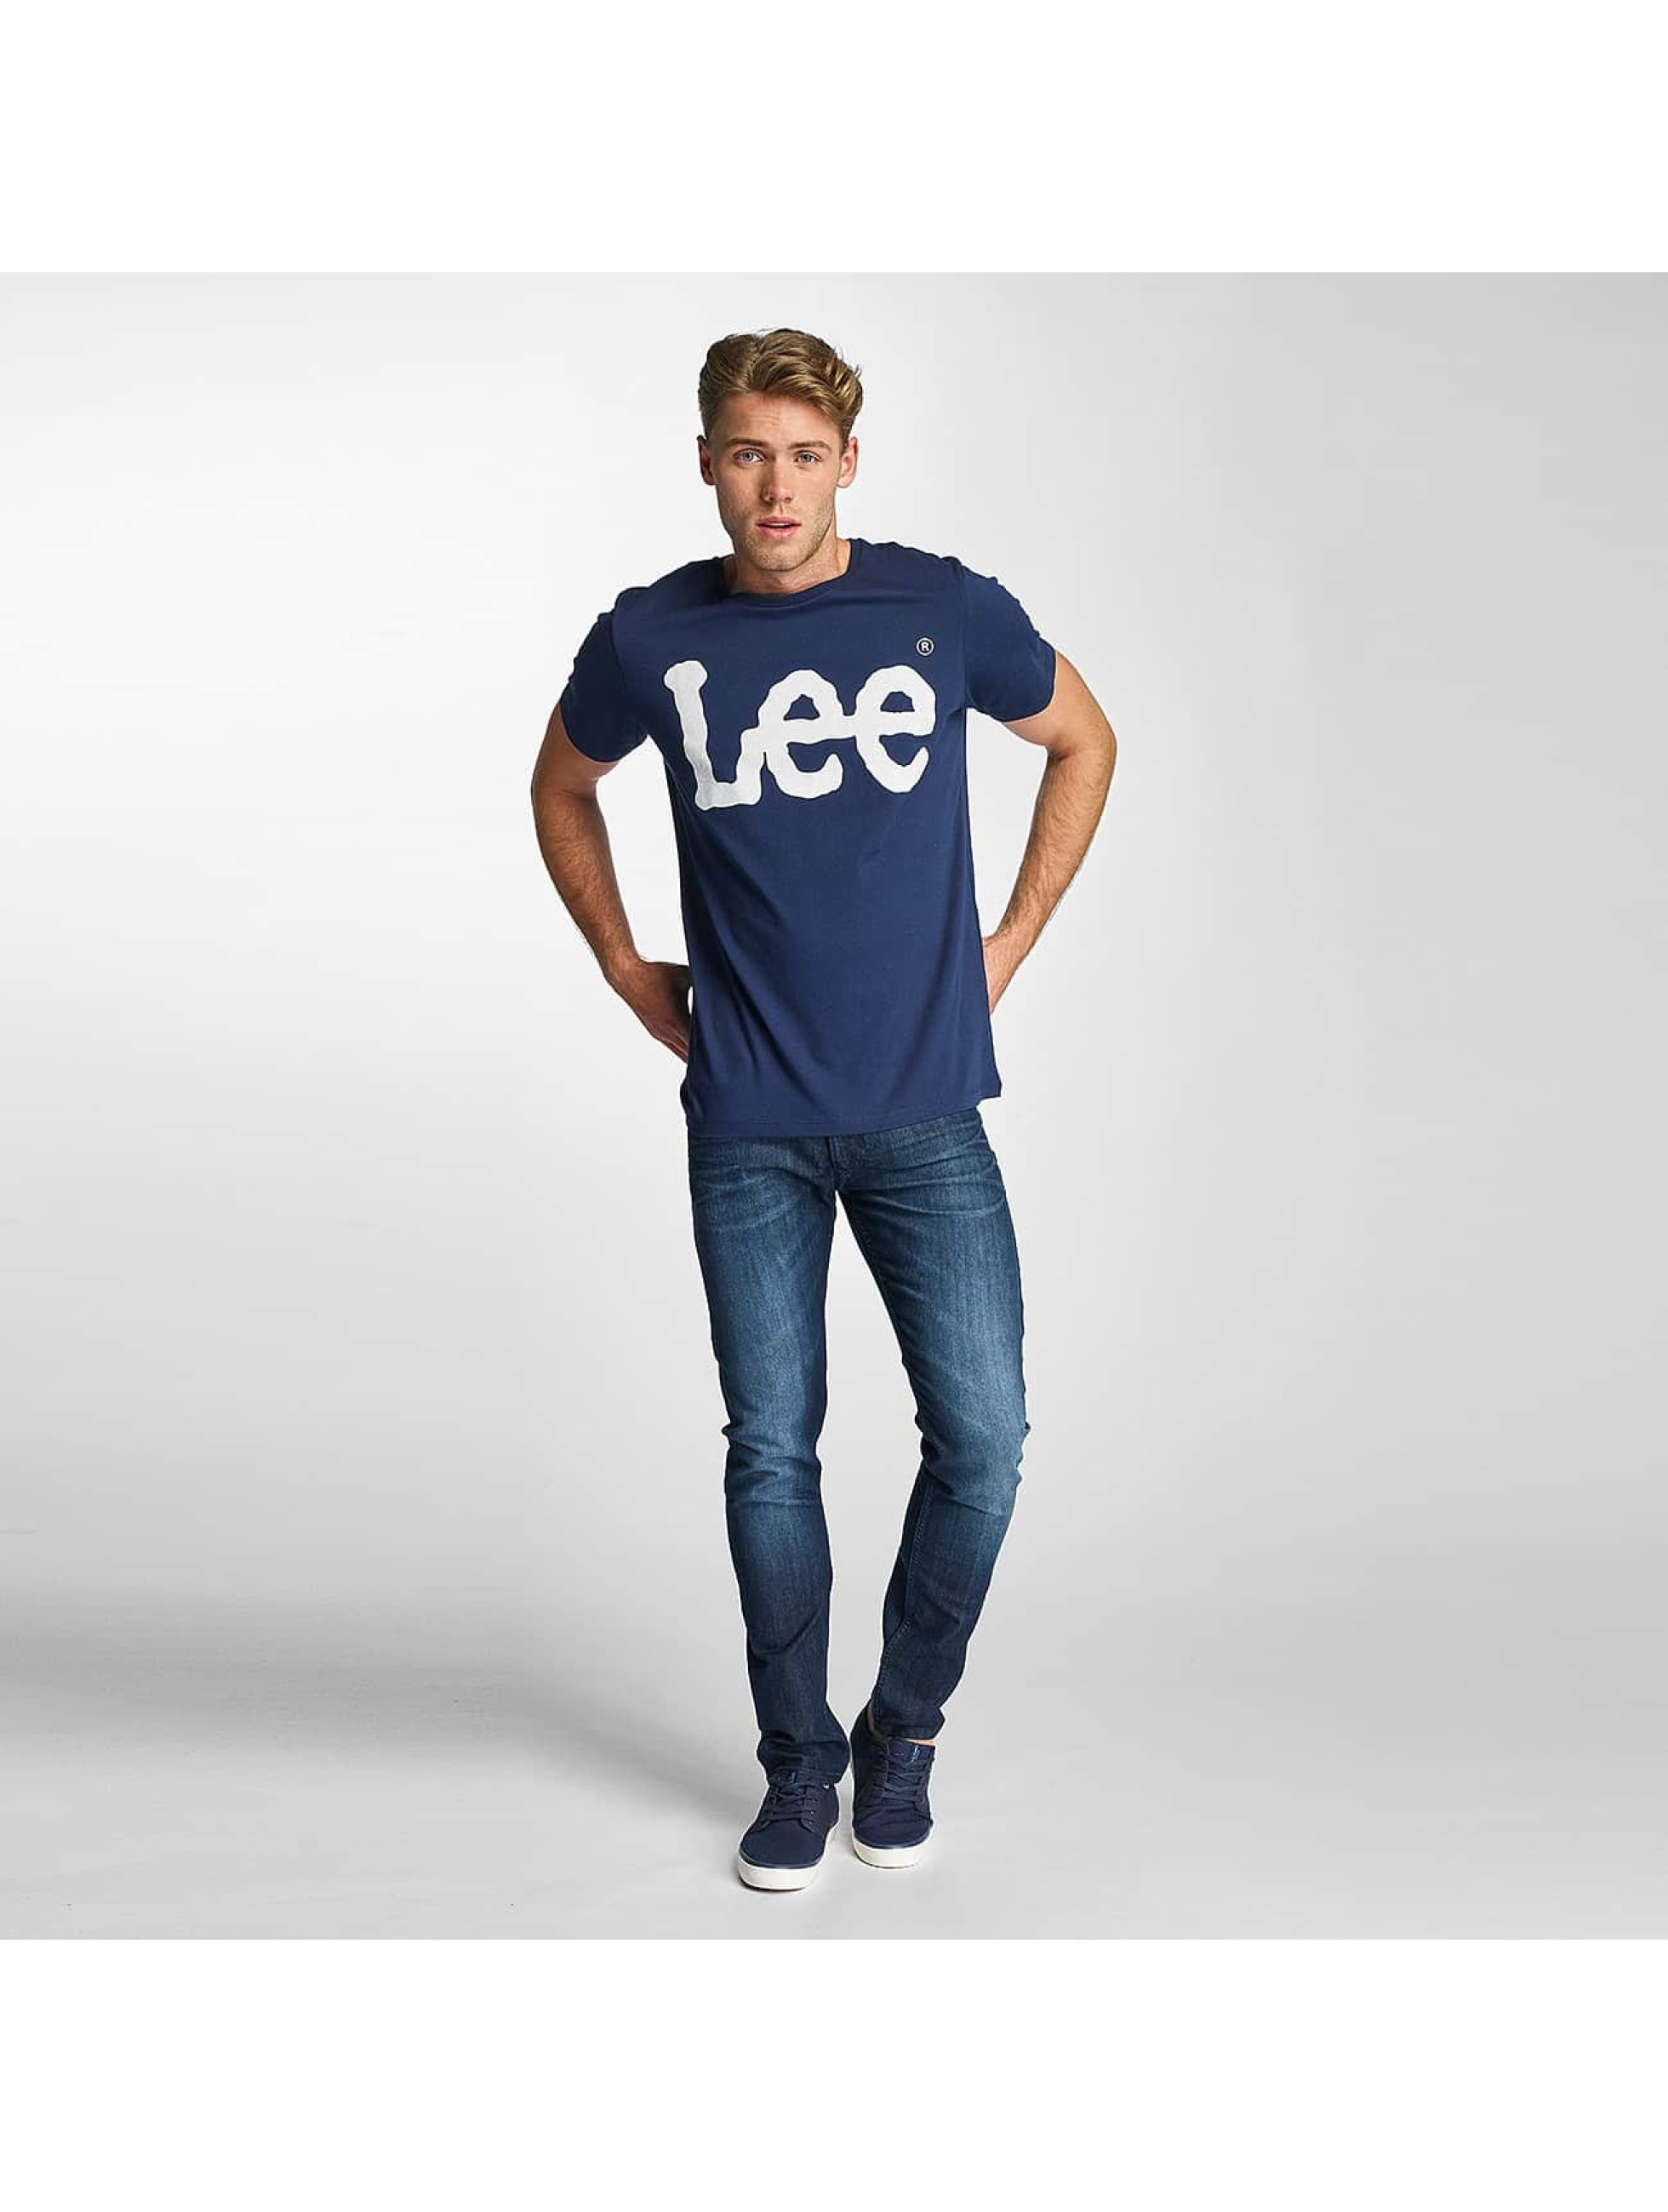 Lee T-Shirt Logo blau